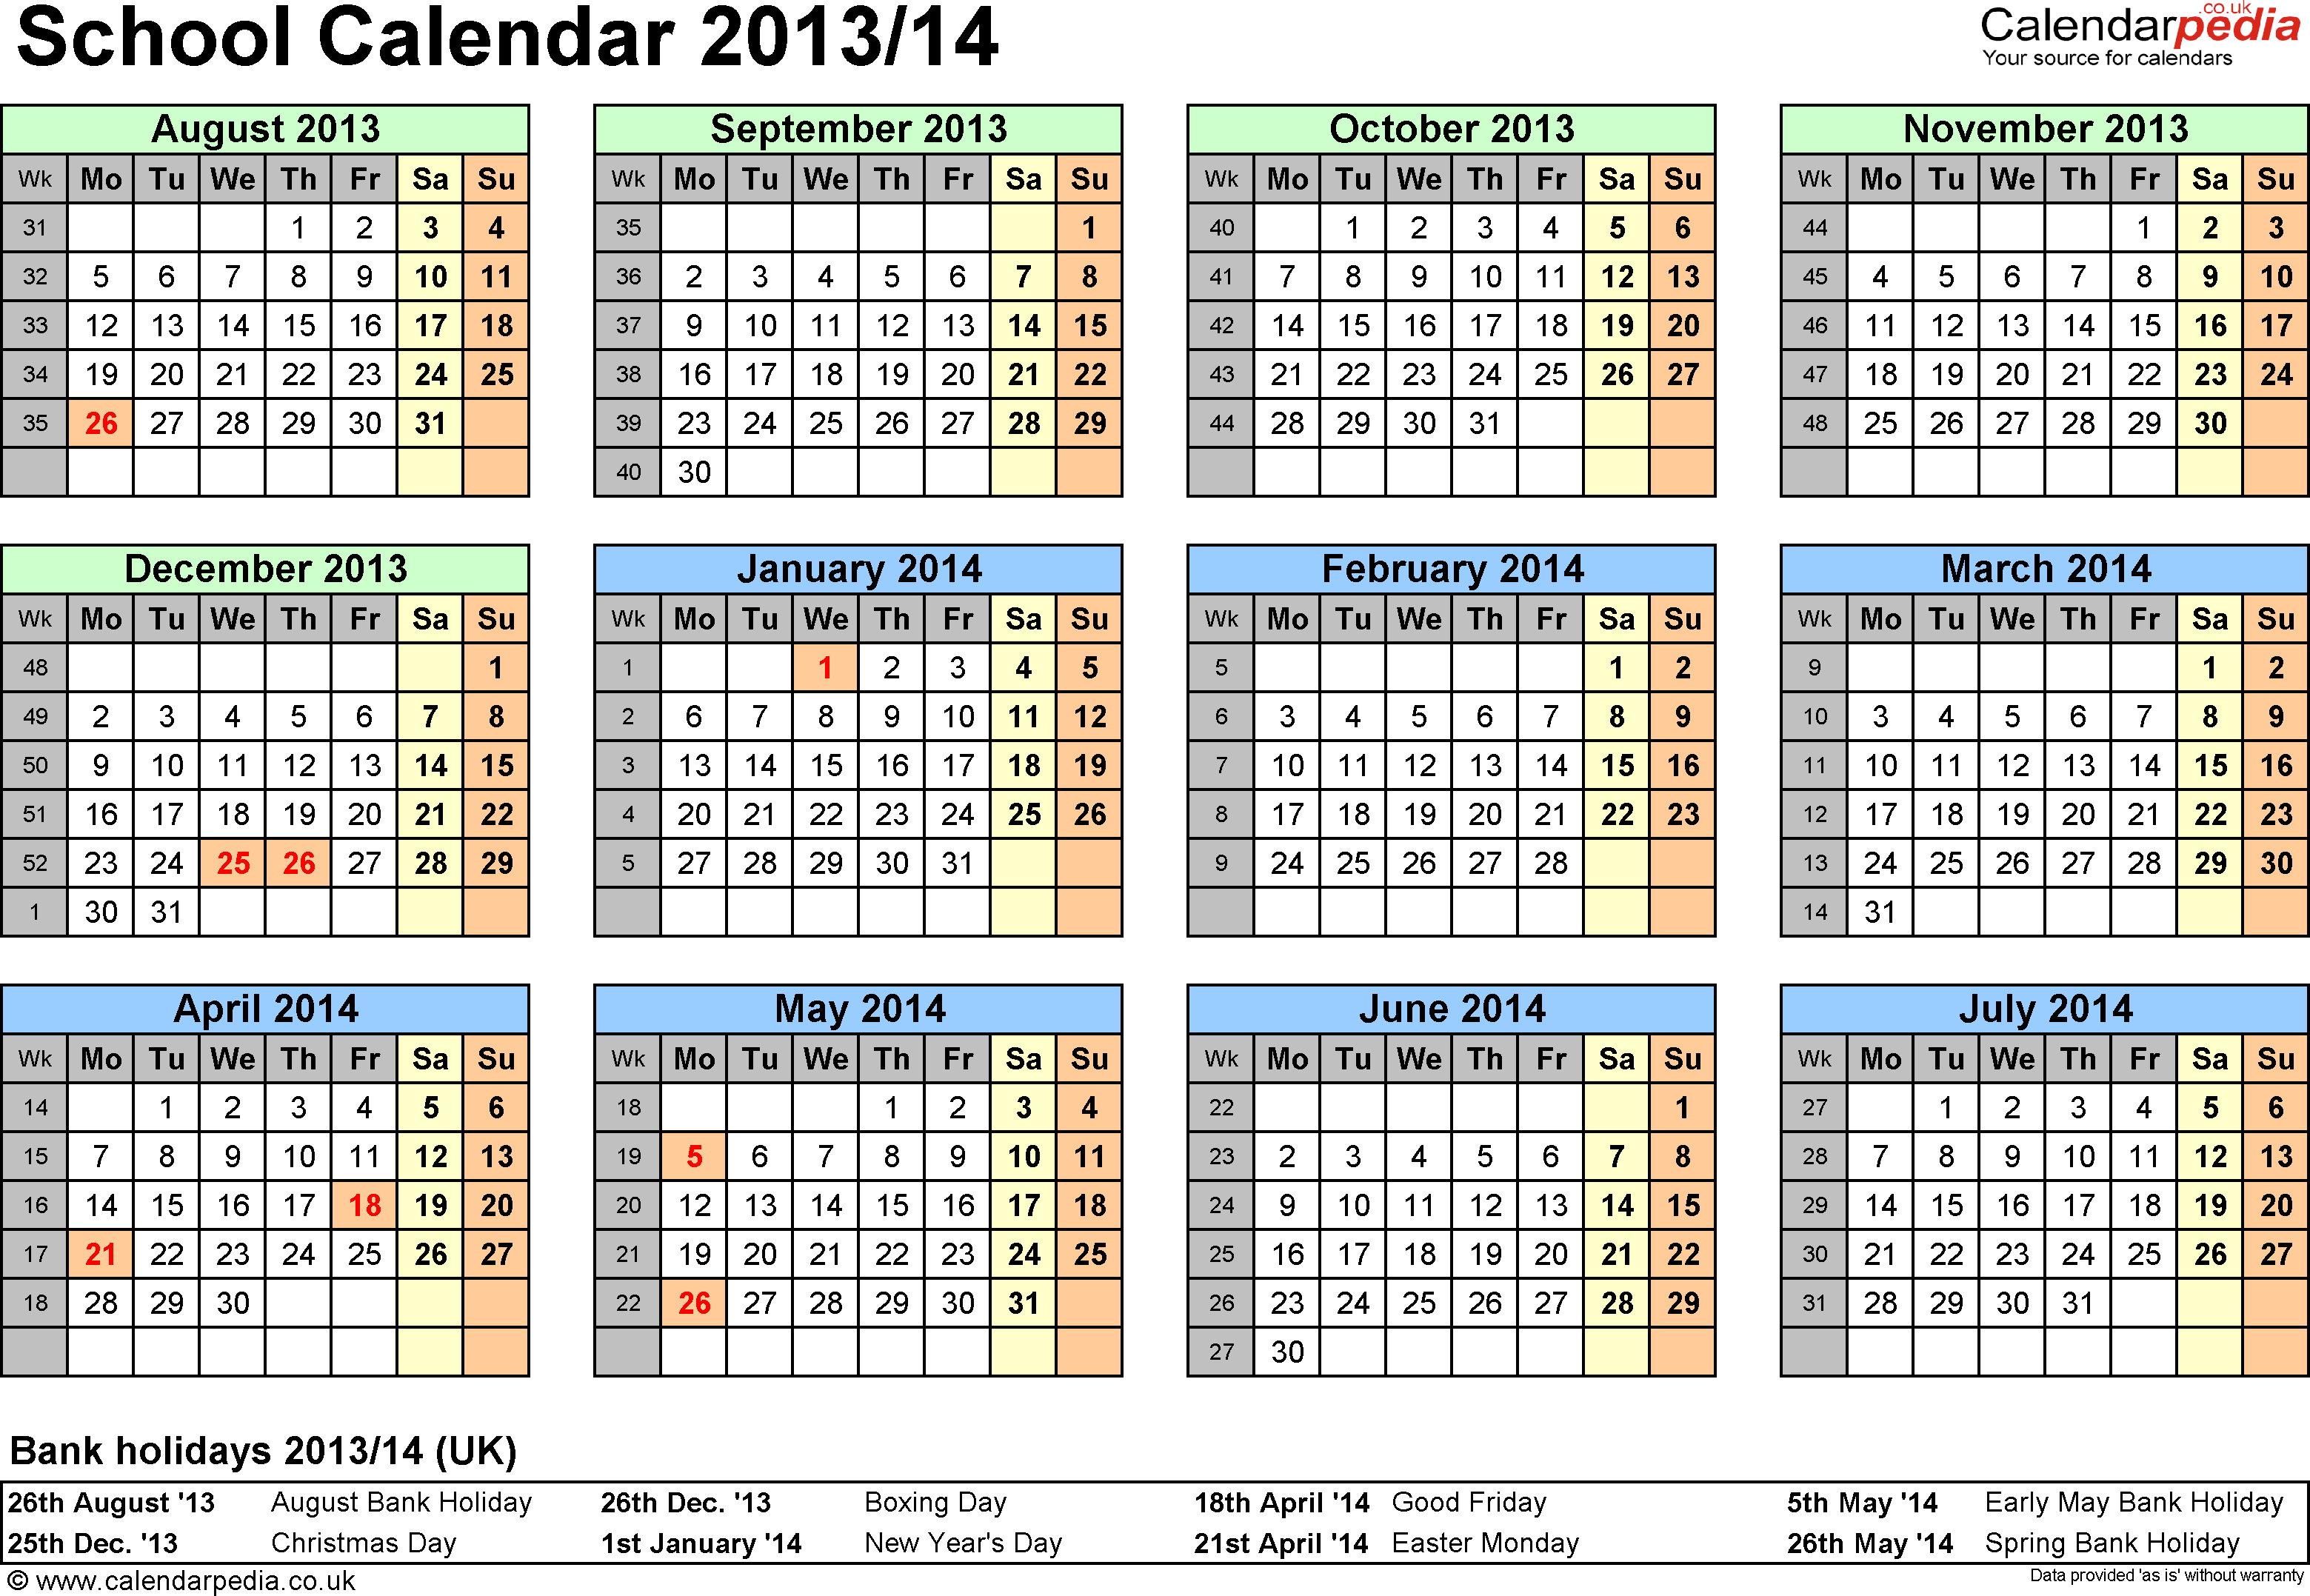 Template 4: School year calendars 2013/14 as PDF template, year overview, 1 page